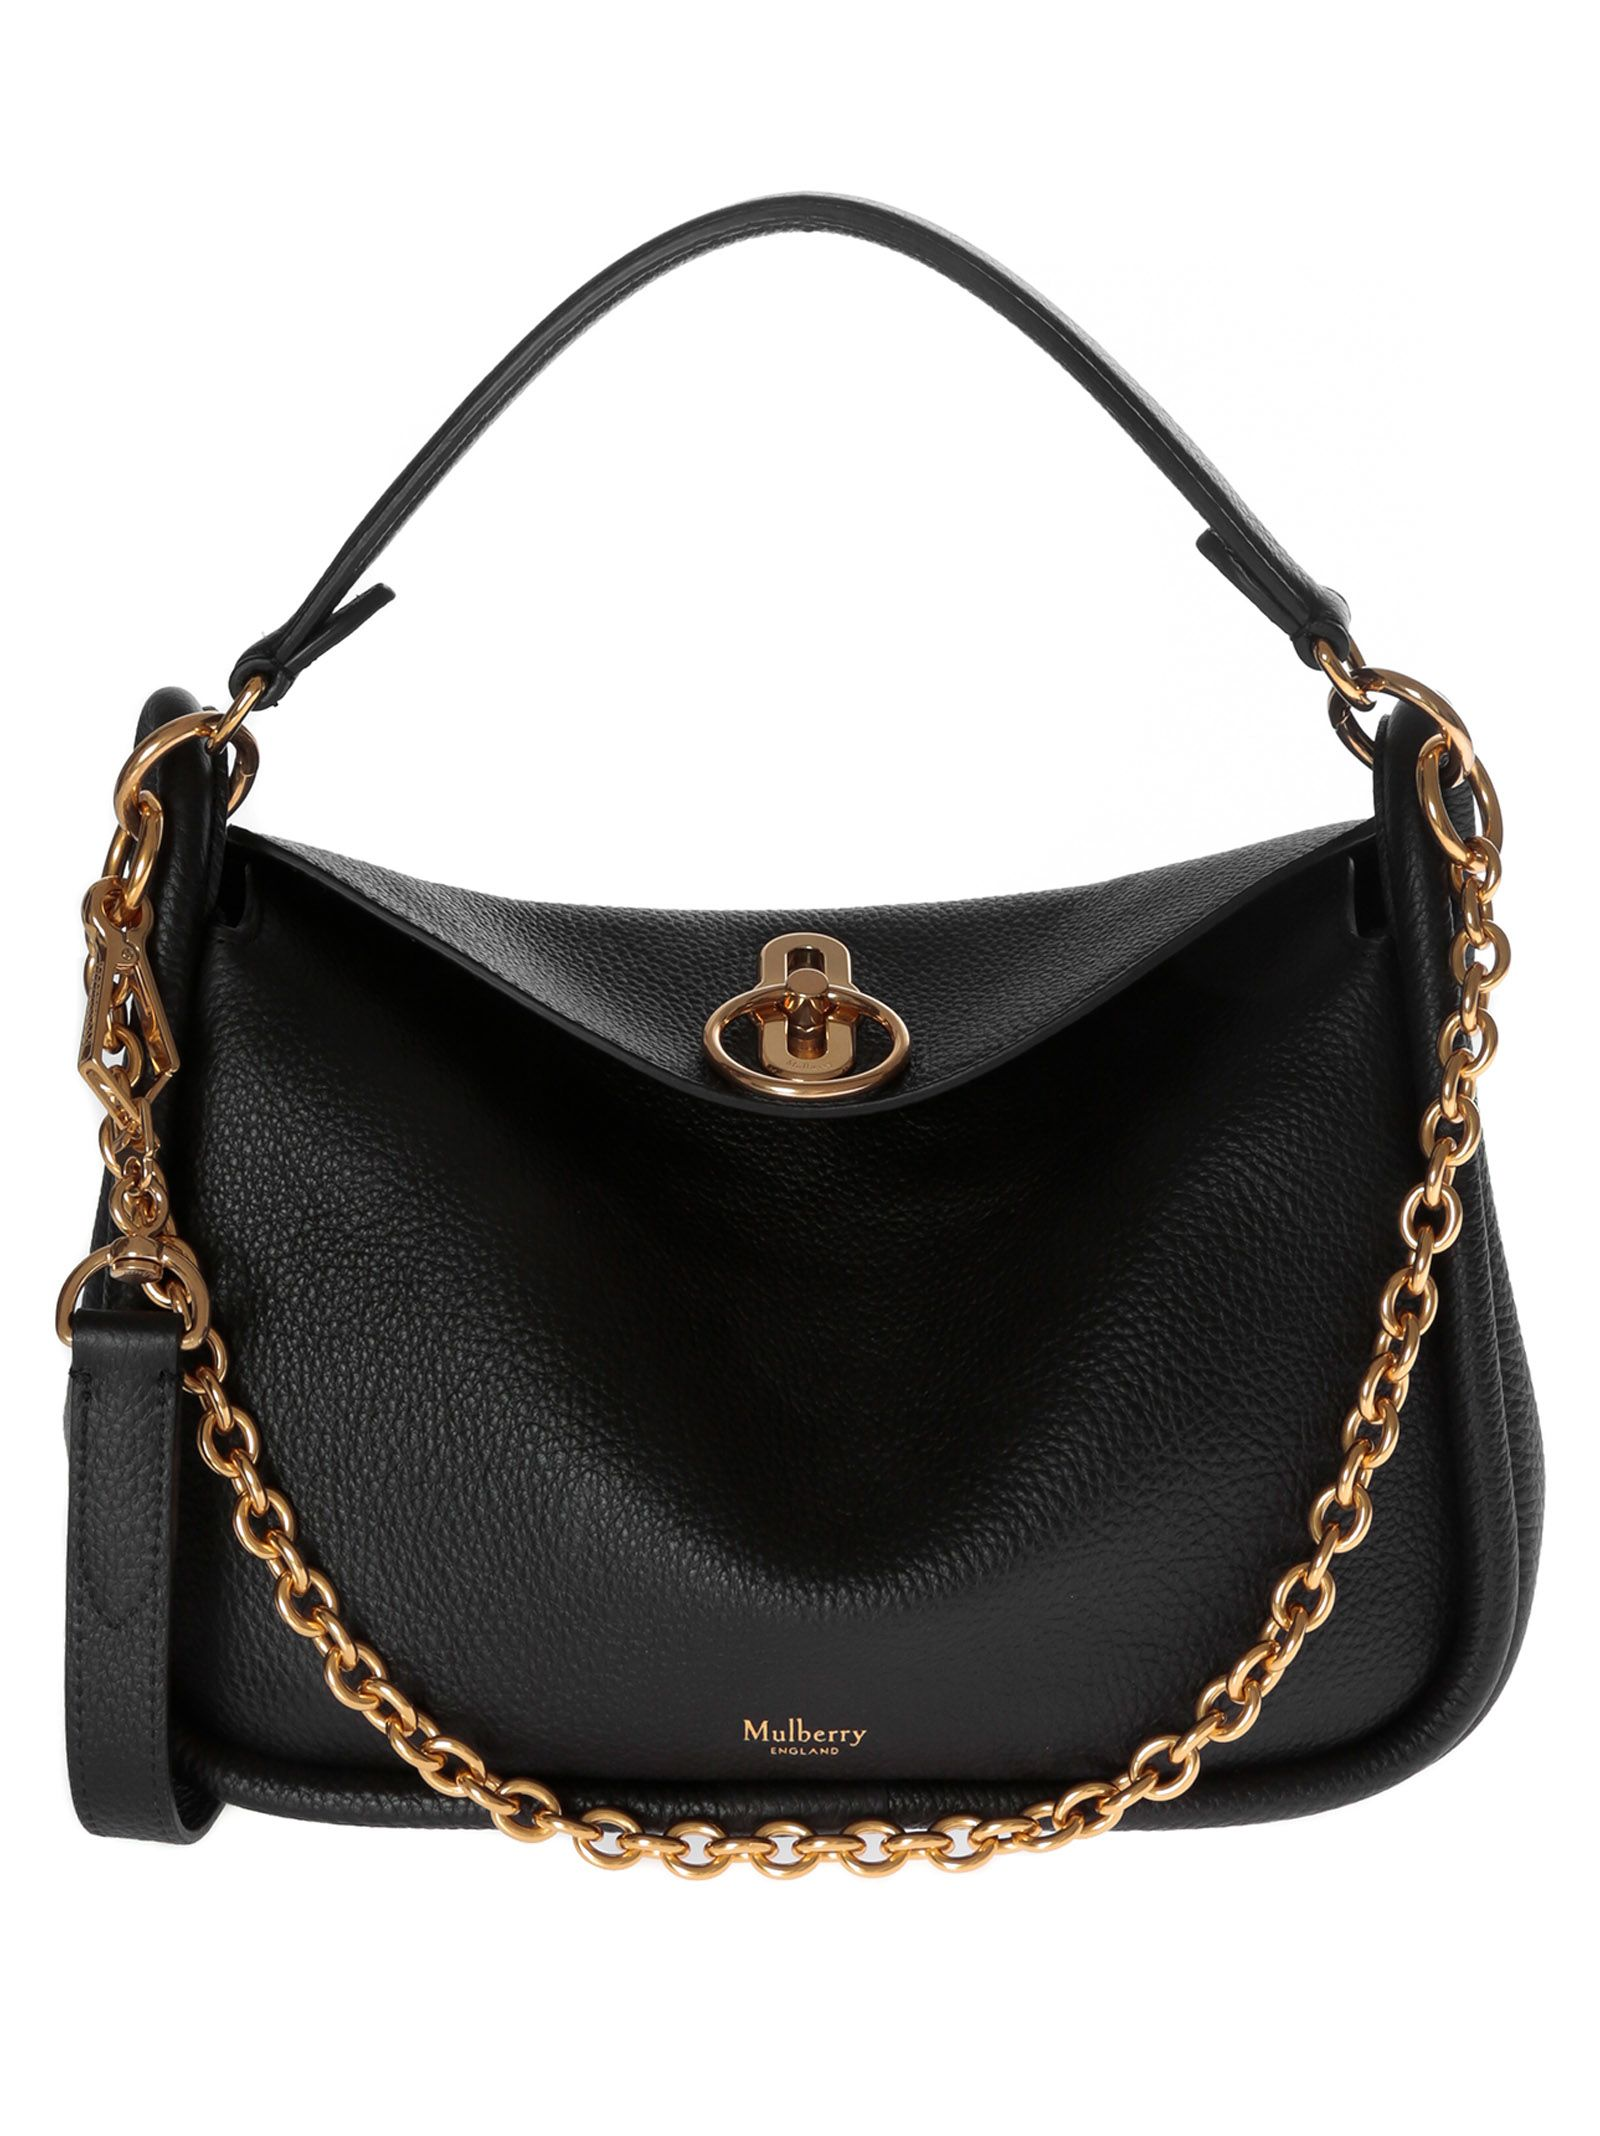 Mulberry Mulberry Small Leighton Shoulder Bag - 10800342   italist f2dca8852c